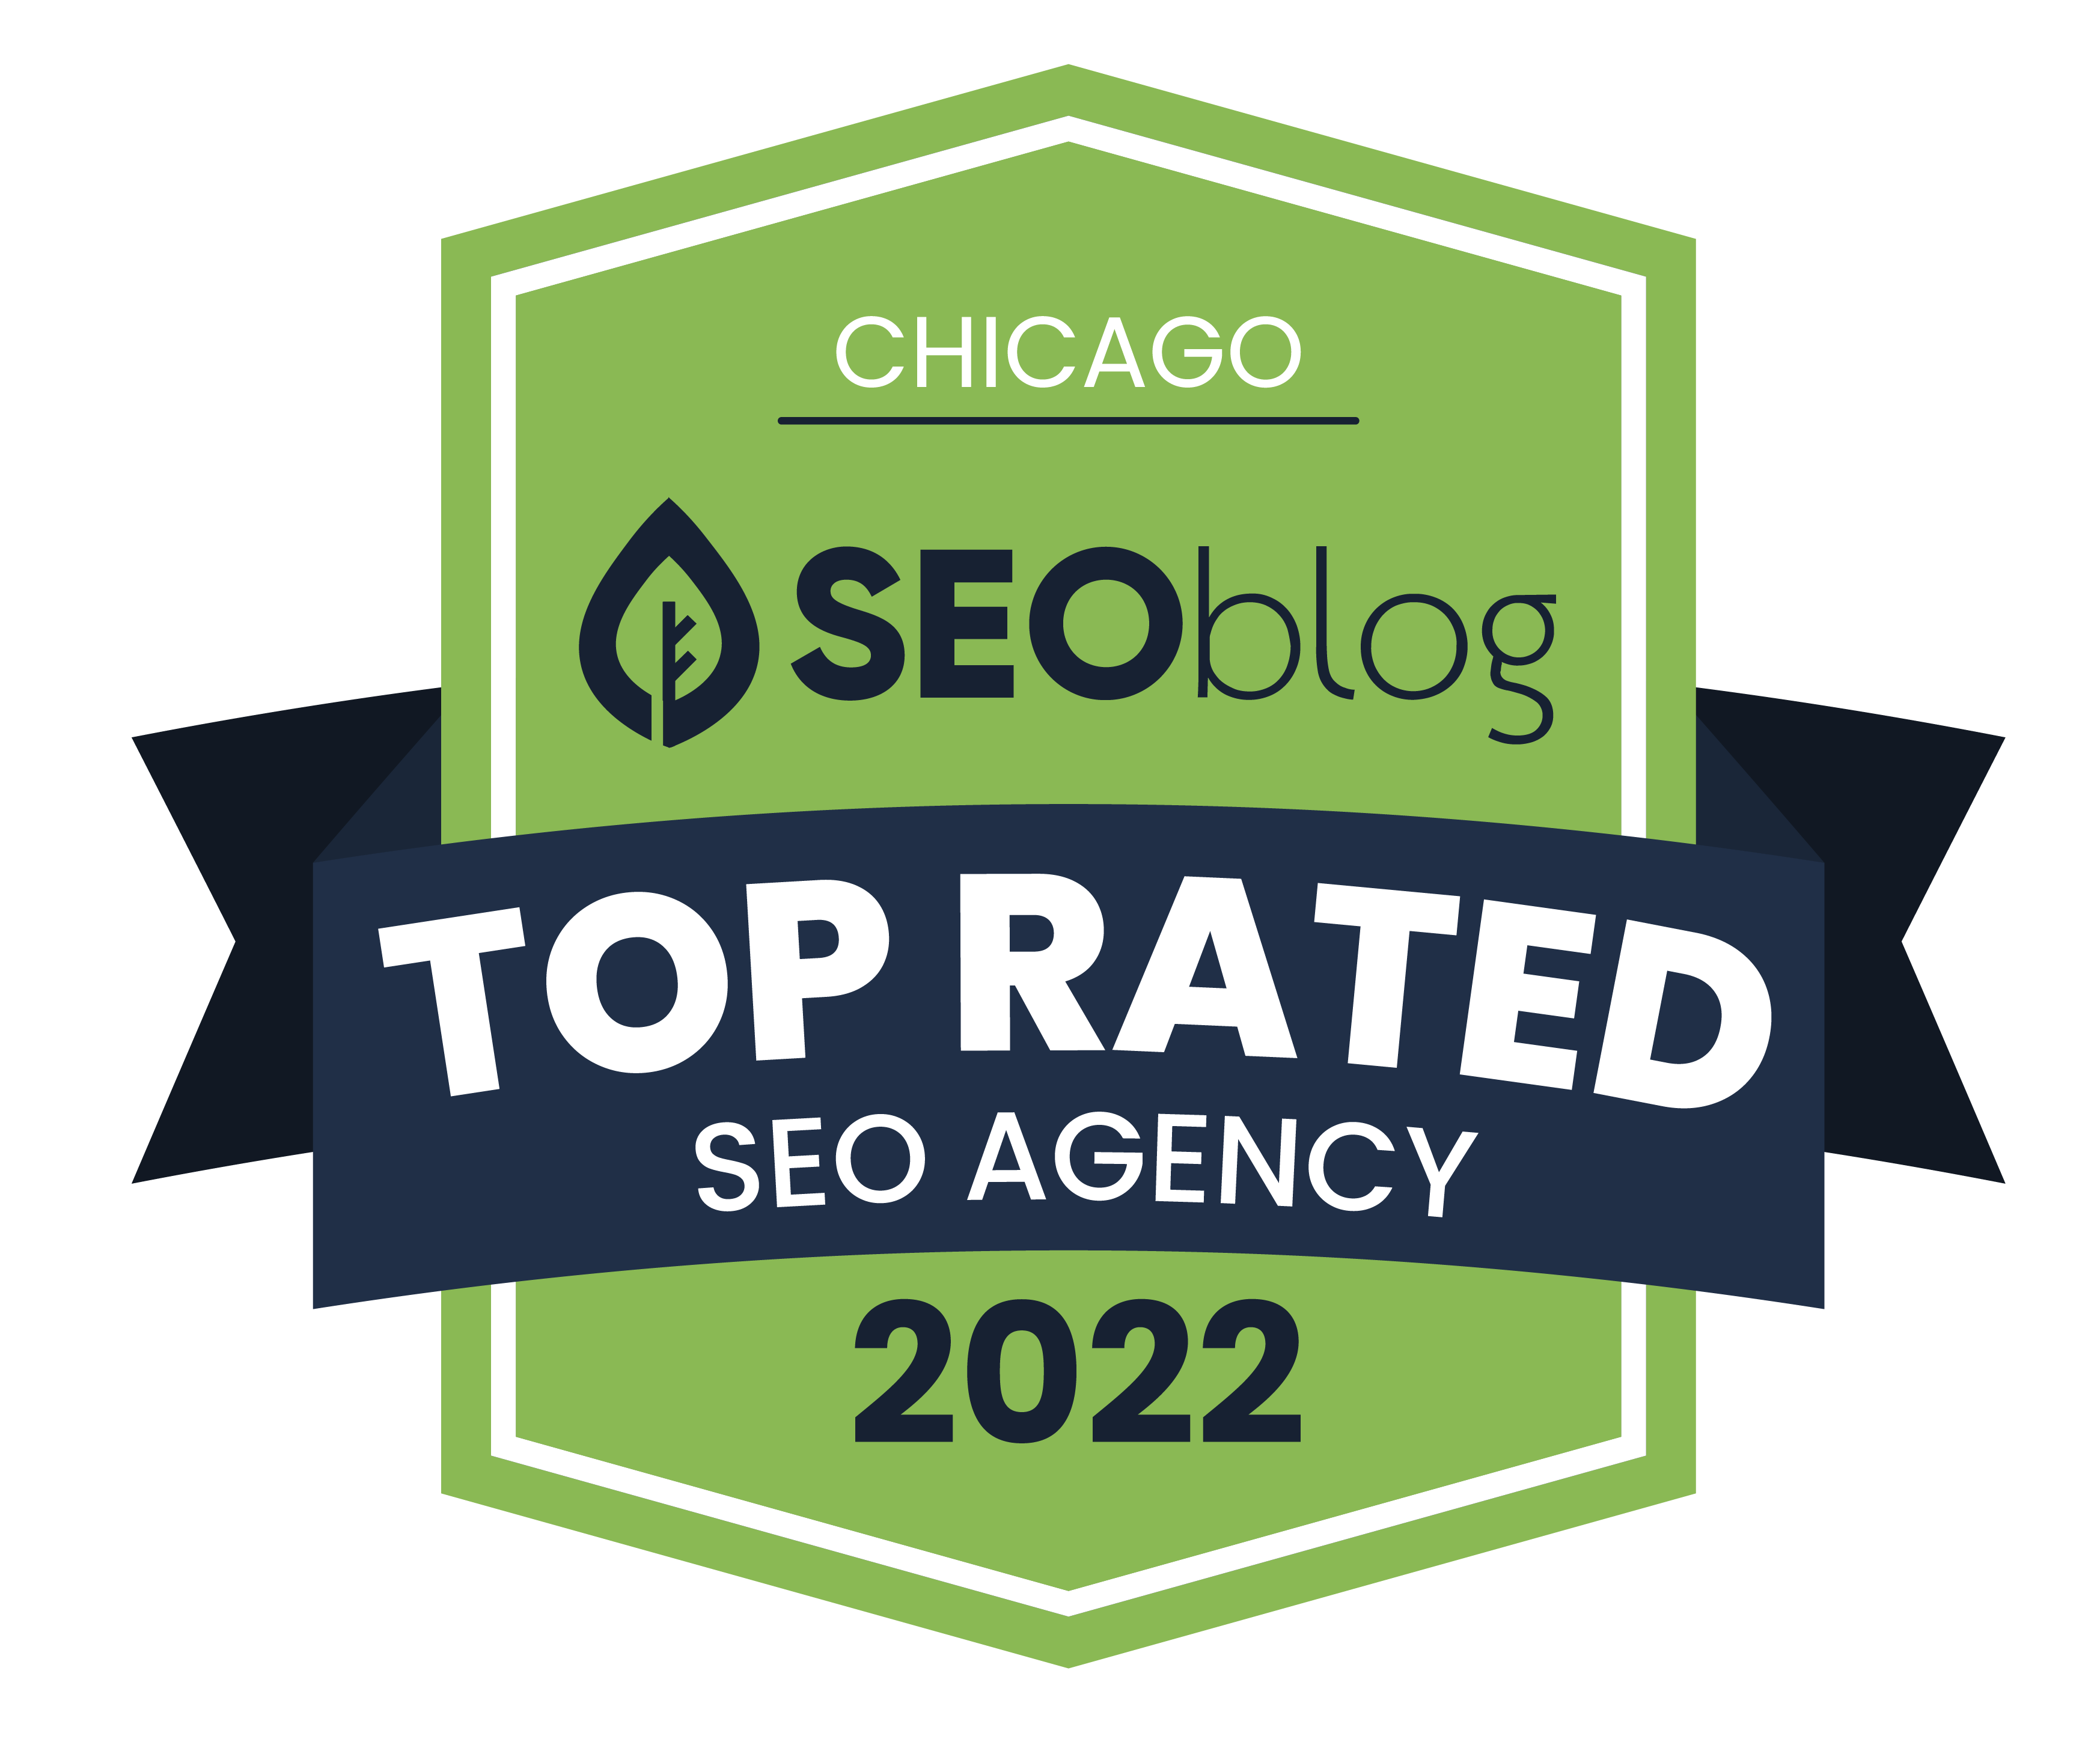 Chicago SEO Agency